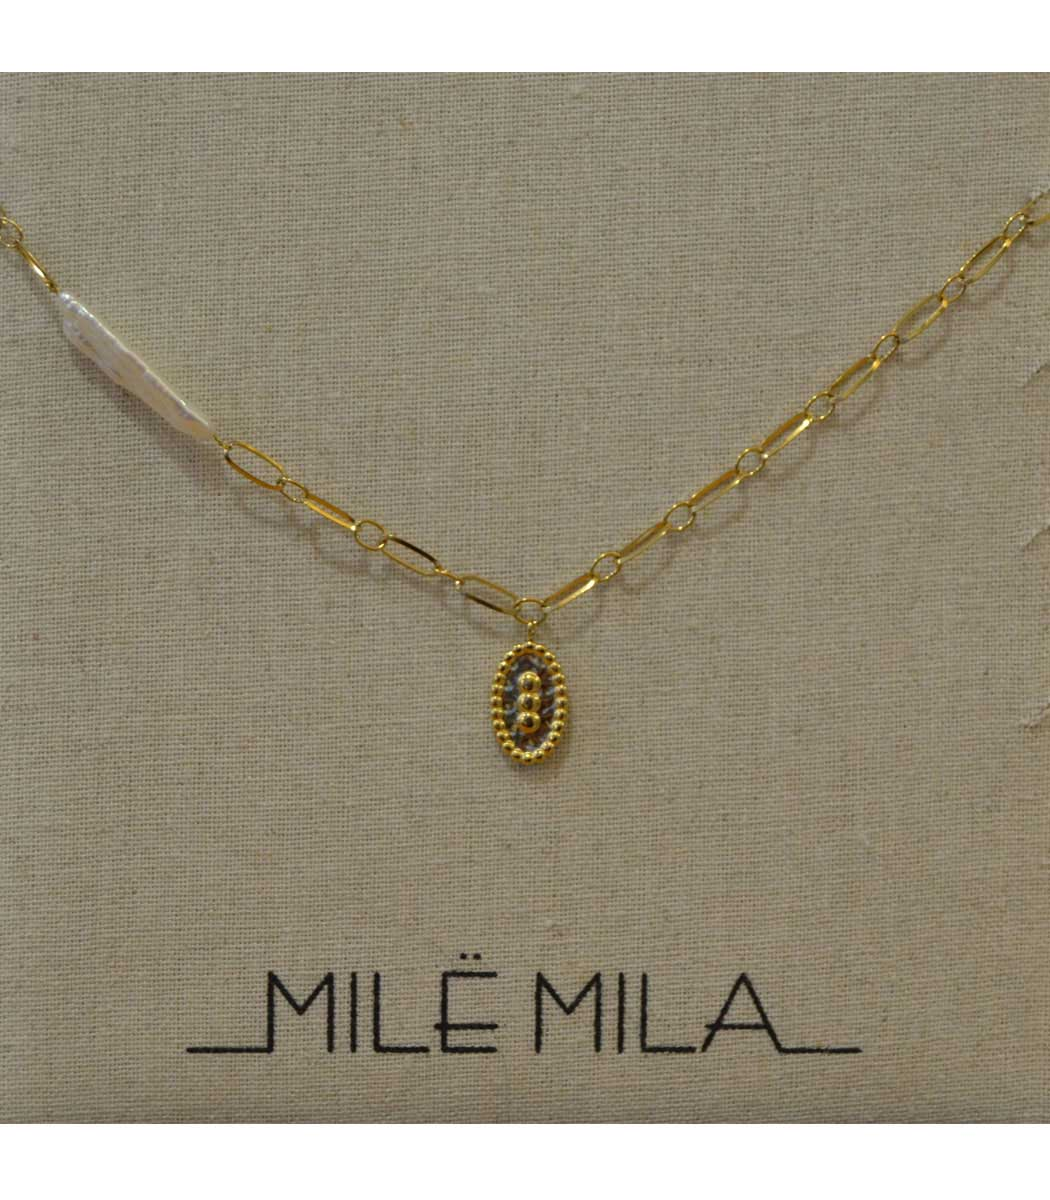 Stainless steel link chain charm necklace